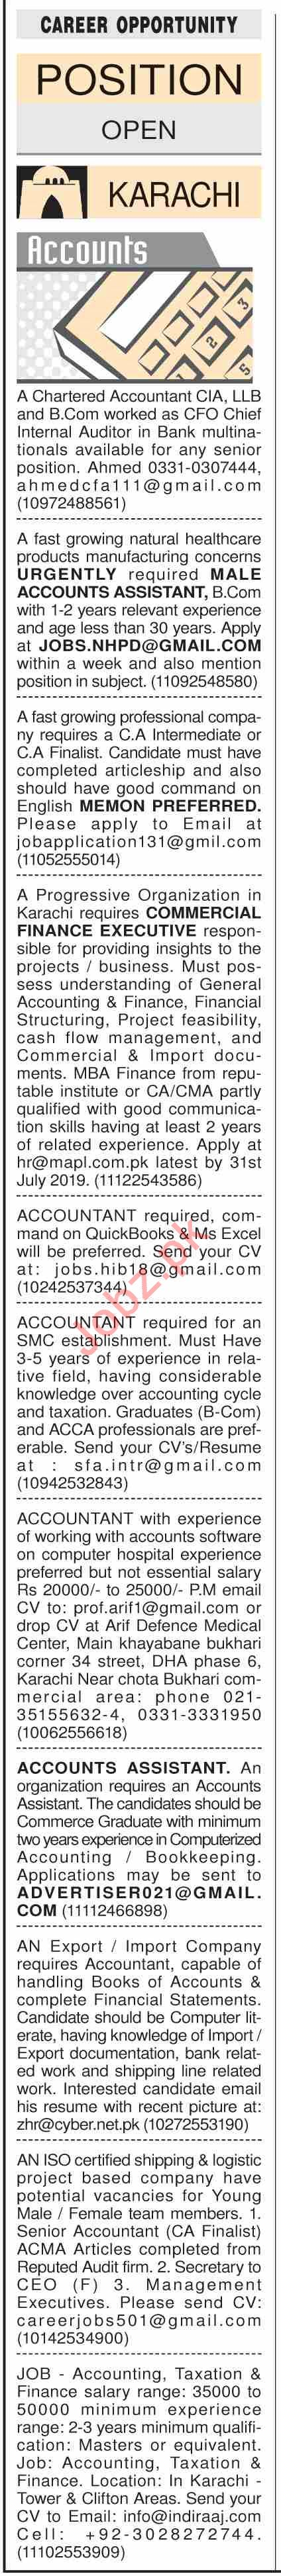 Dawn Sunday Classified Ads 21st July 2019 for Accounts